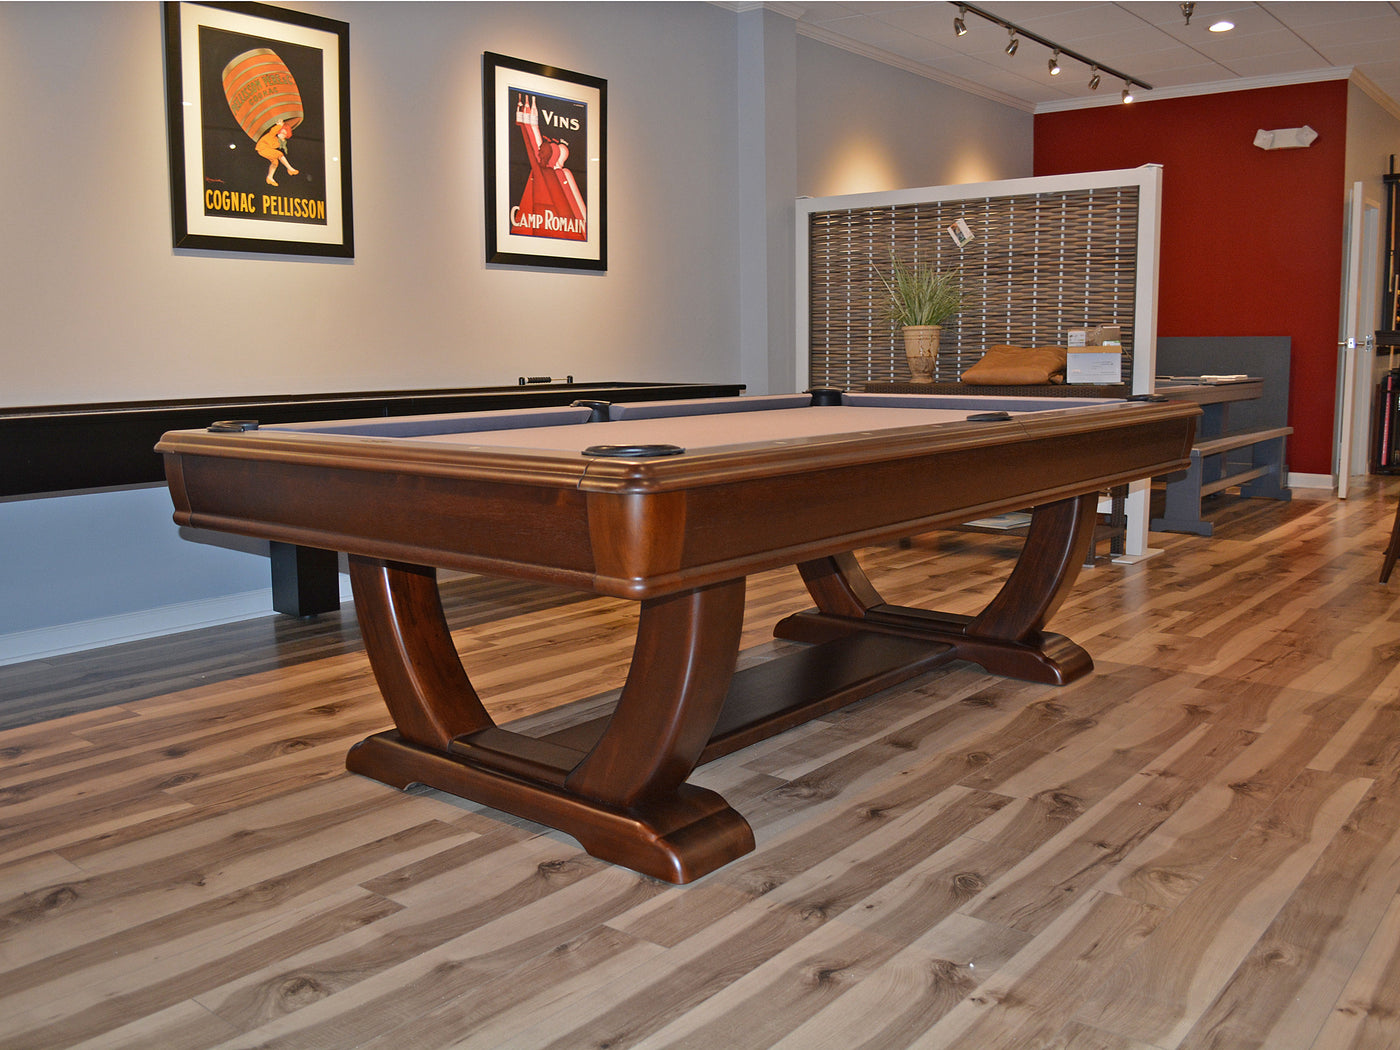 Brunswick De Soto Pool Table Robbies Billiards - Brunswick centennial pool table